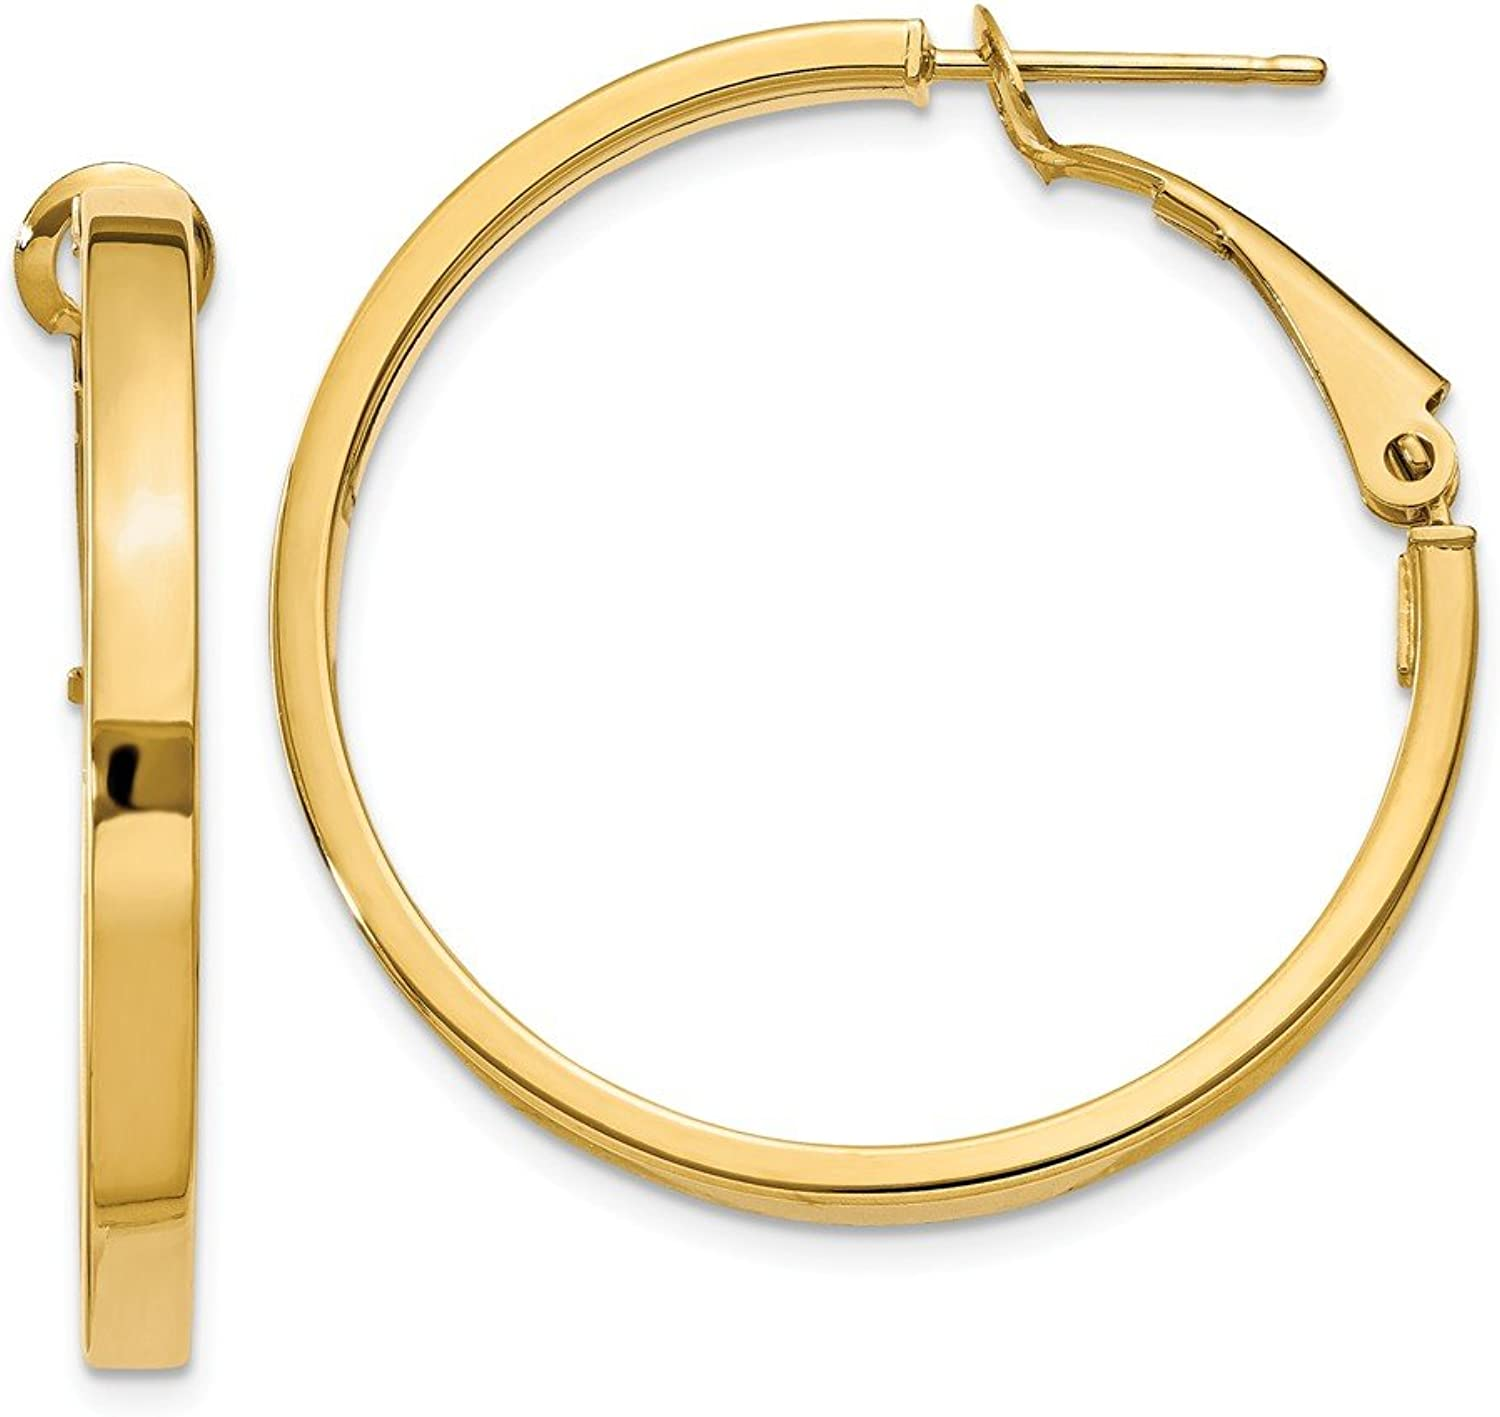 Beautiful Yellow gold 14K Yellowgold 14k 3x25mm Polished Square Tube Round Hoop Earrings